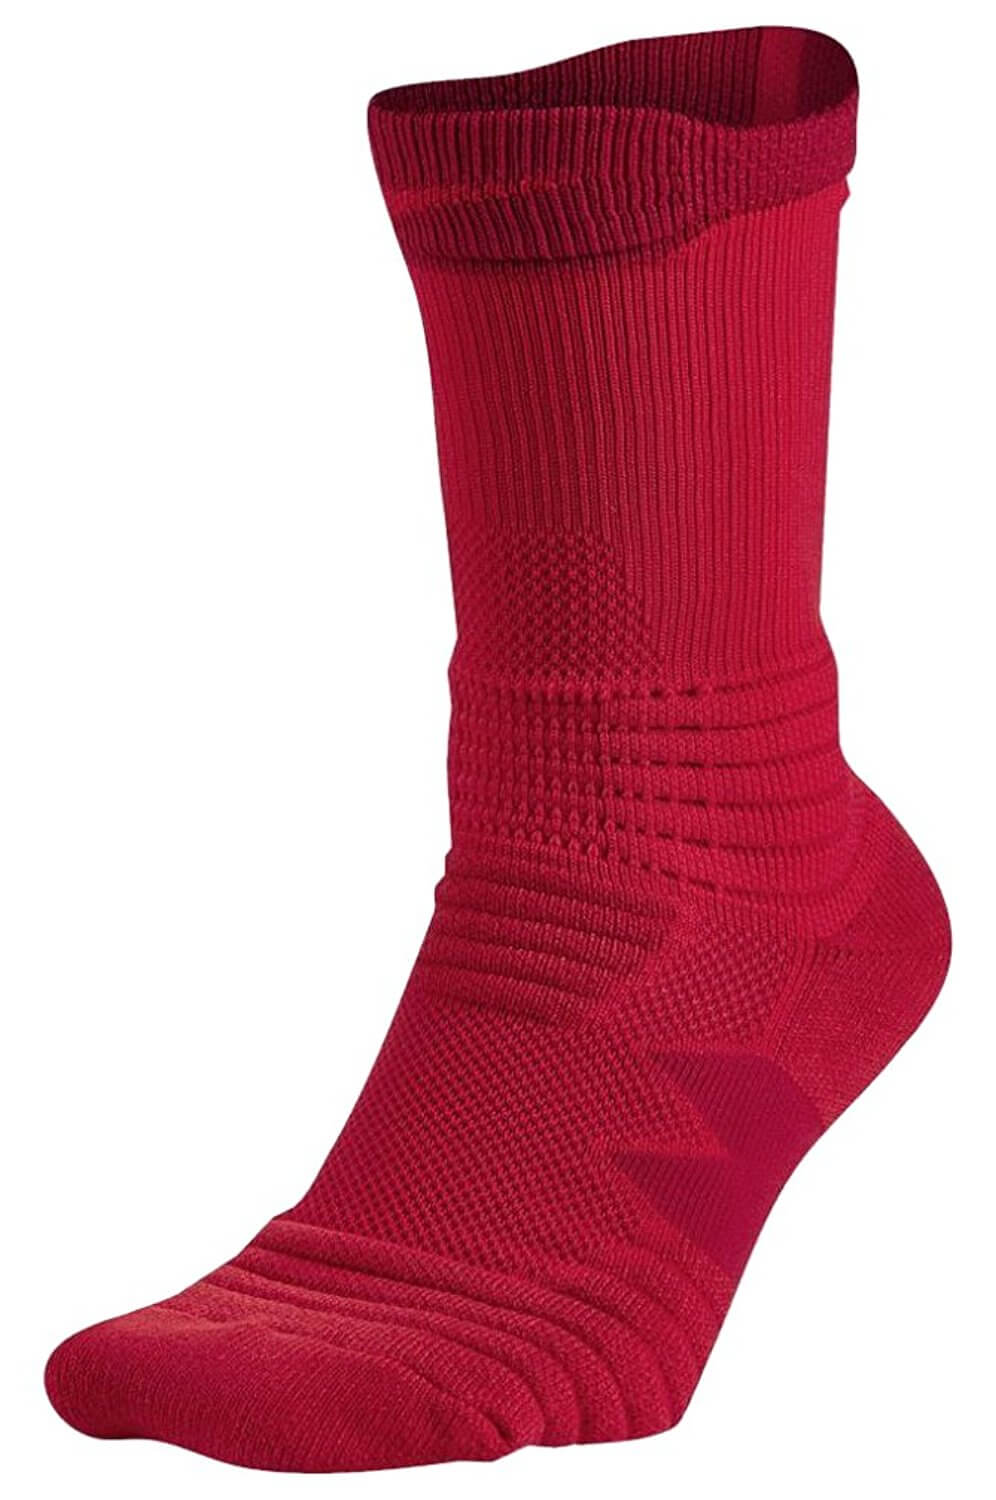 caa4064007d7 10 Best Basketball Socks Reviewed   Compared